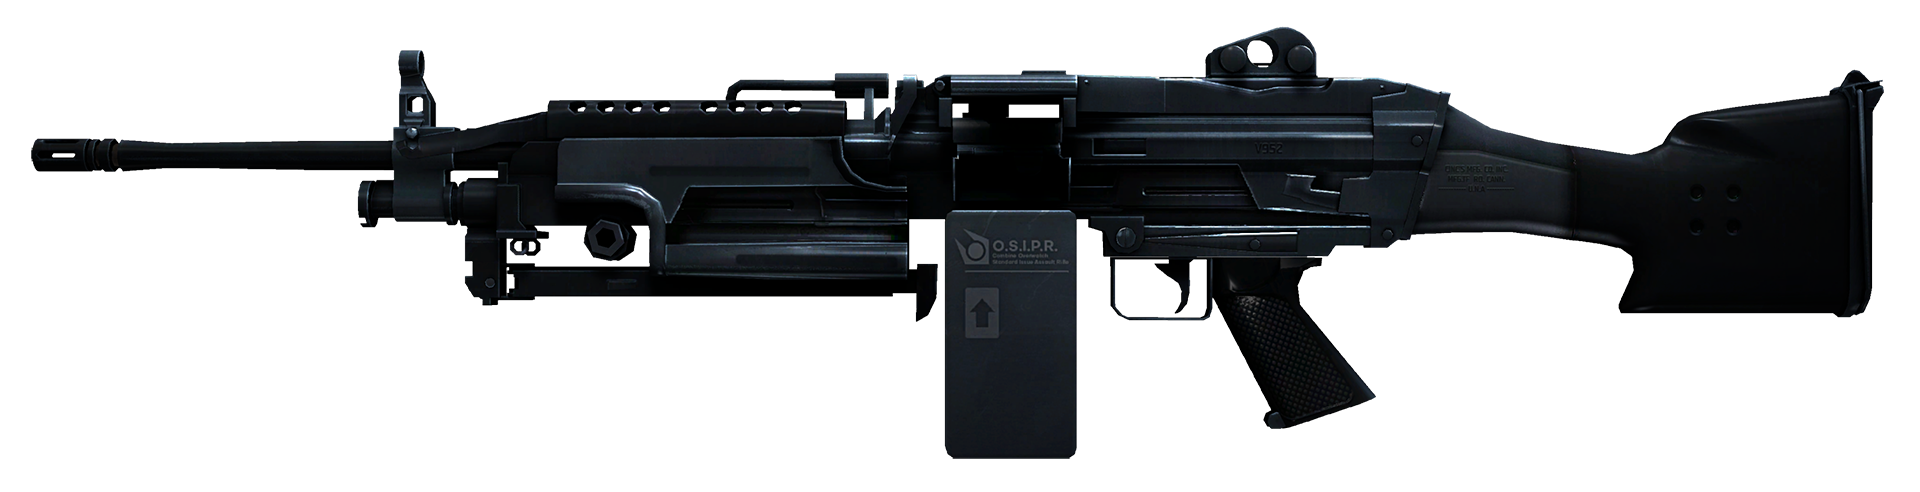 M249 O.S.I.P.R. Large Rendering